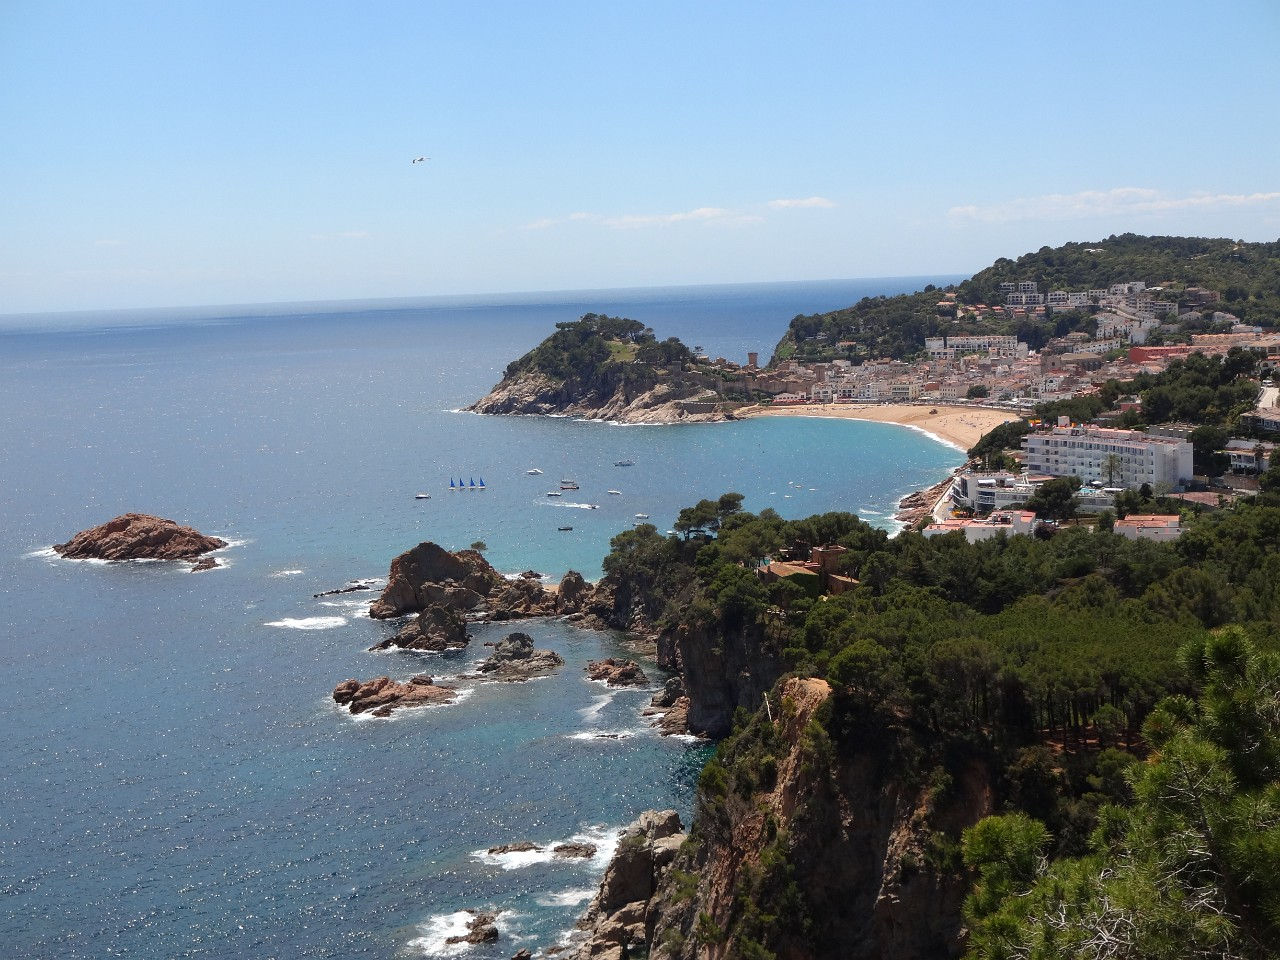 Scenic stops on the coastal route between Tossa de Mar and San Feliu de Guixols